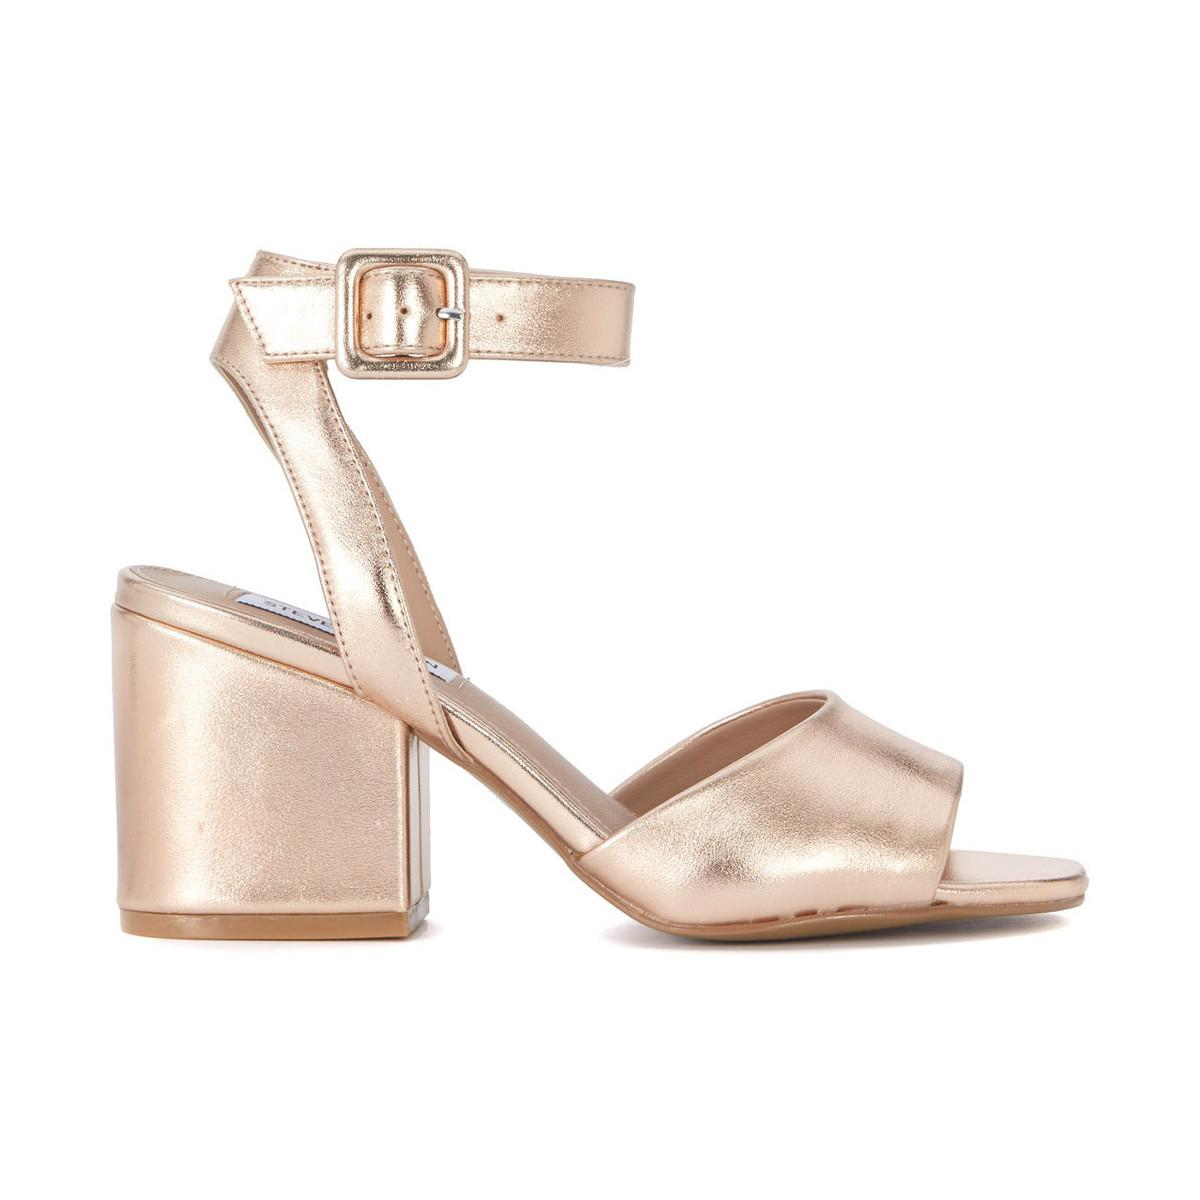 0230255b33d8 Steve Madden. Metallic Sandalo Debbie In Pelle Oro Rosa Women s Sandals In  Gold